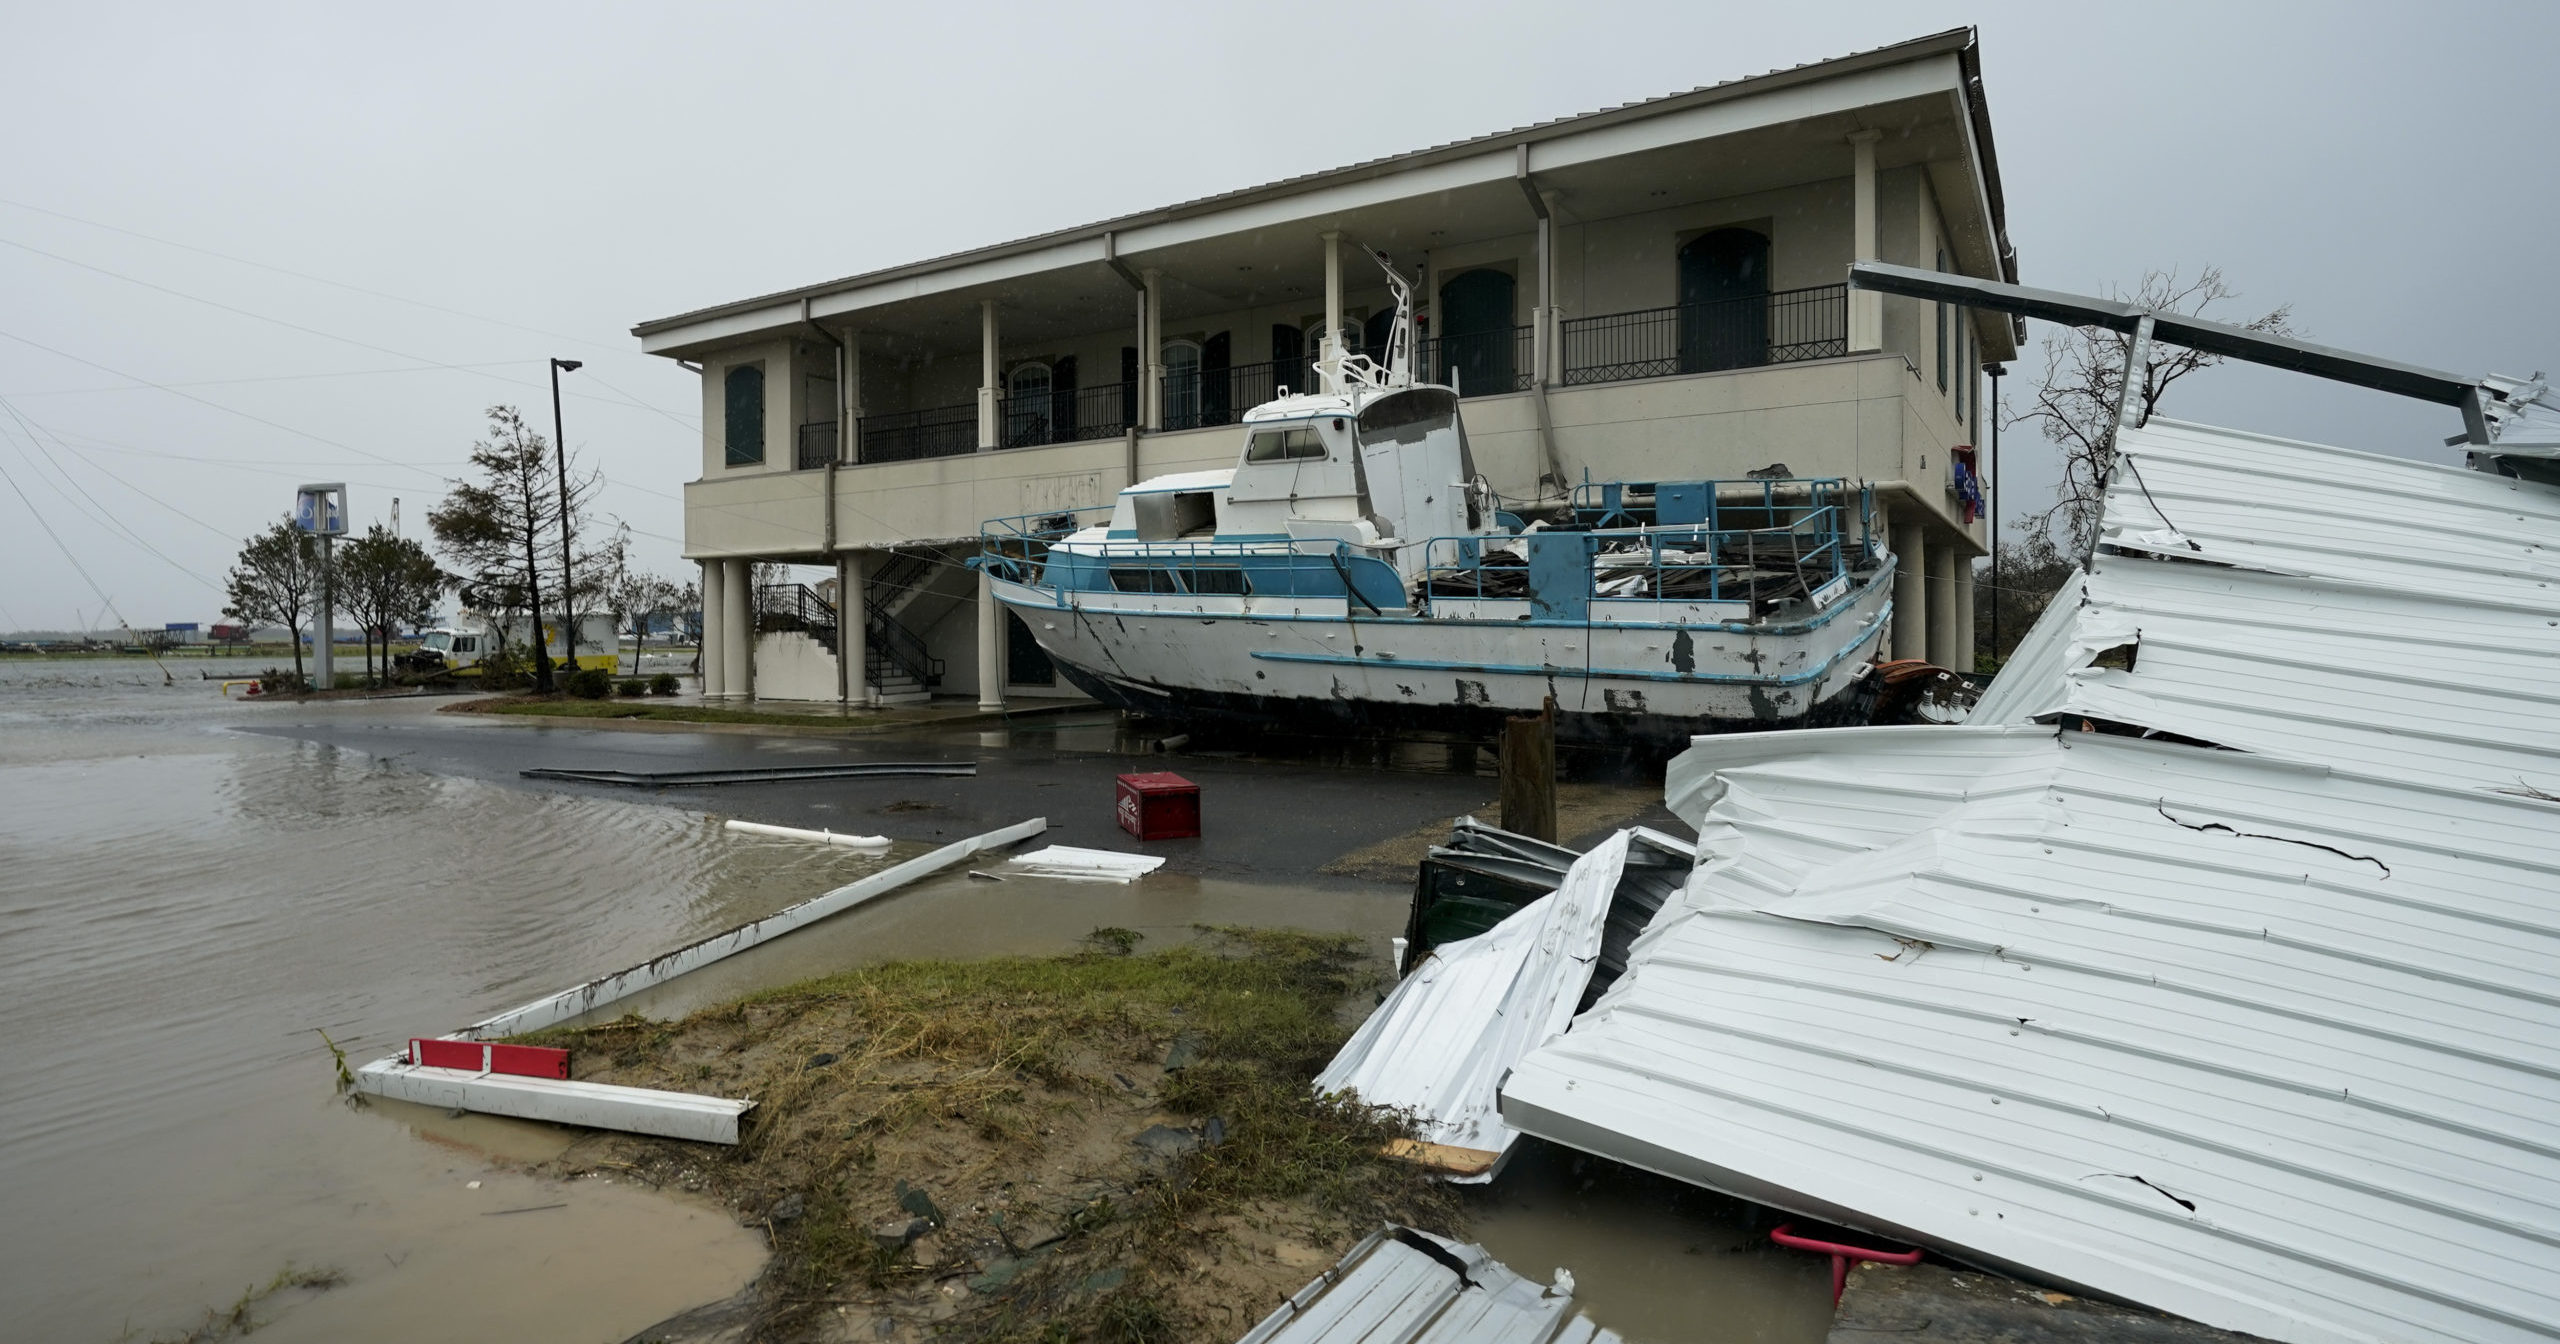 Flooding surrounds a damaged building and boat on Aug. 28, 2020, in Cameron, Louisiana, after Hurricane Laura moved through the area.